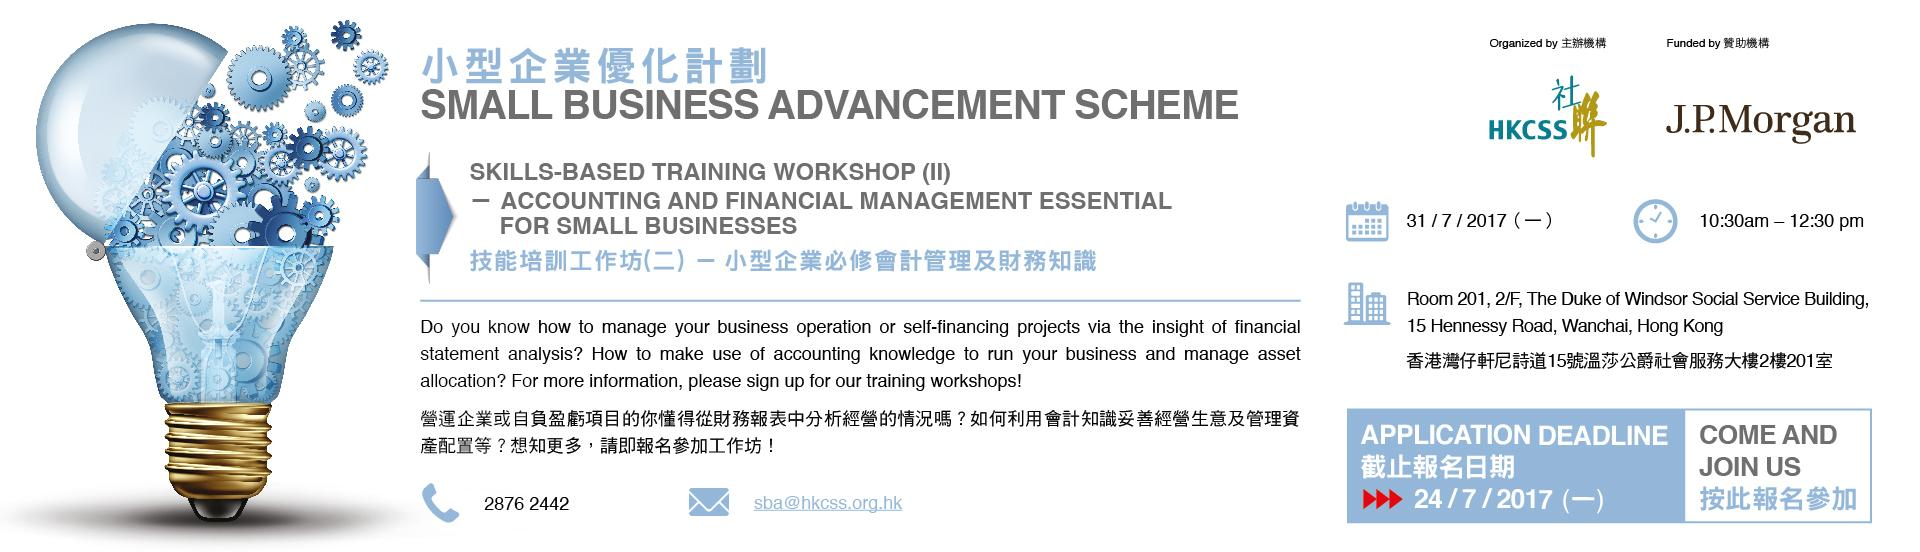 Call for Action - Accounting and Financial Management Essential for small businesses